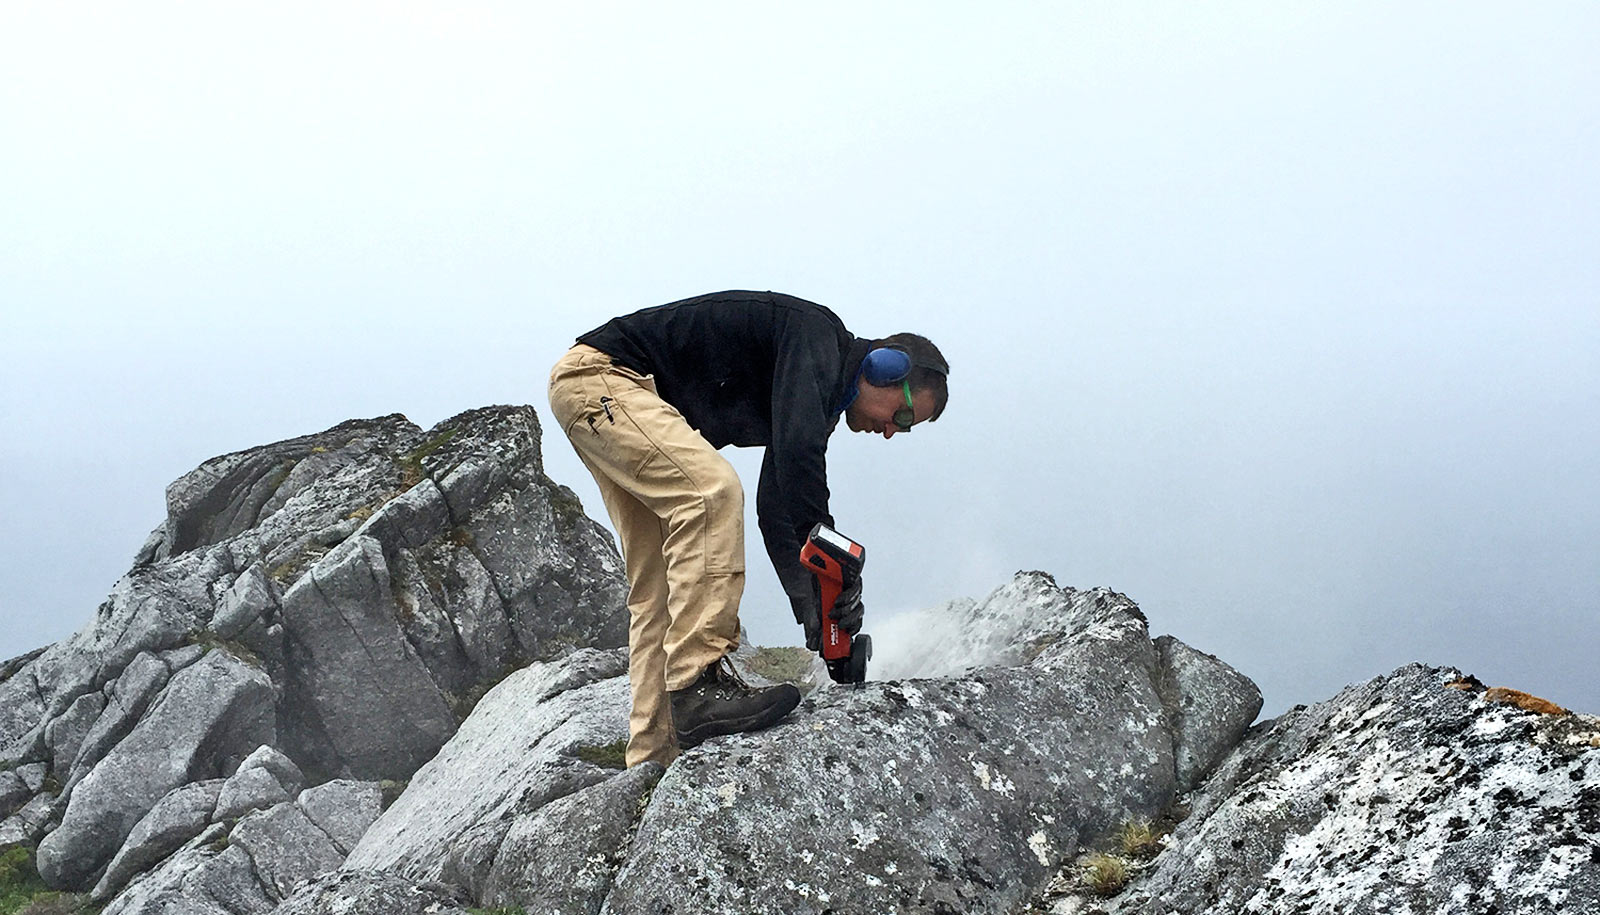 geologist bends to drill into rock